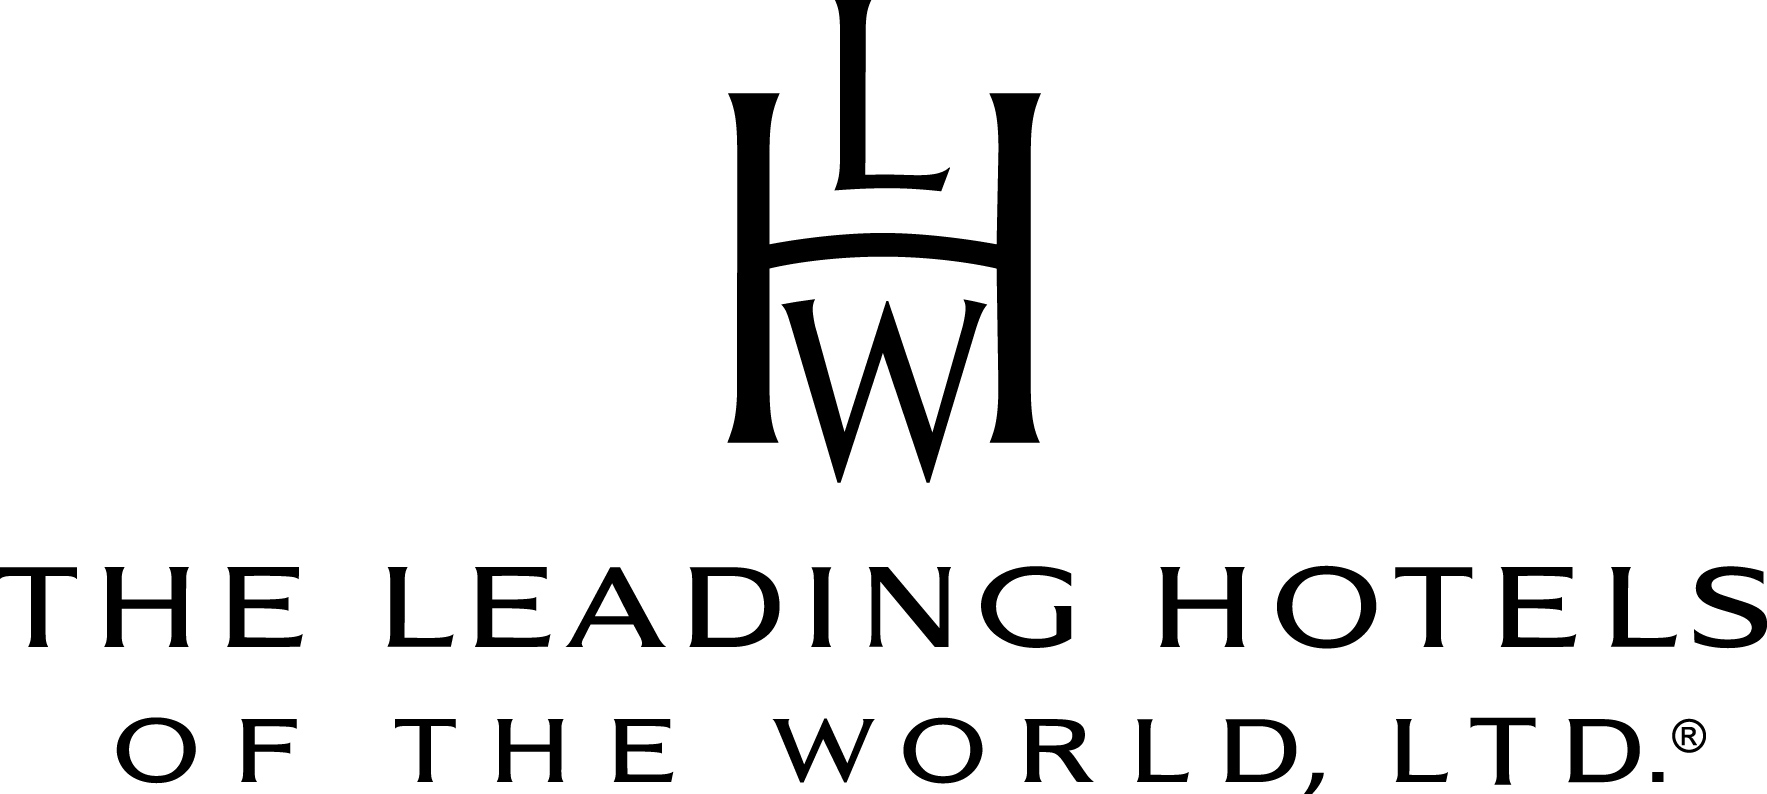 the leading hotels of the world s loyalty program